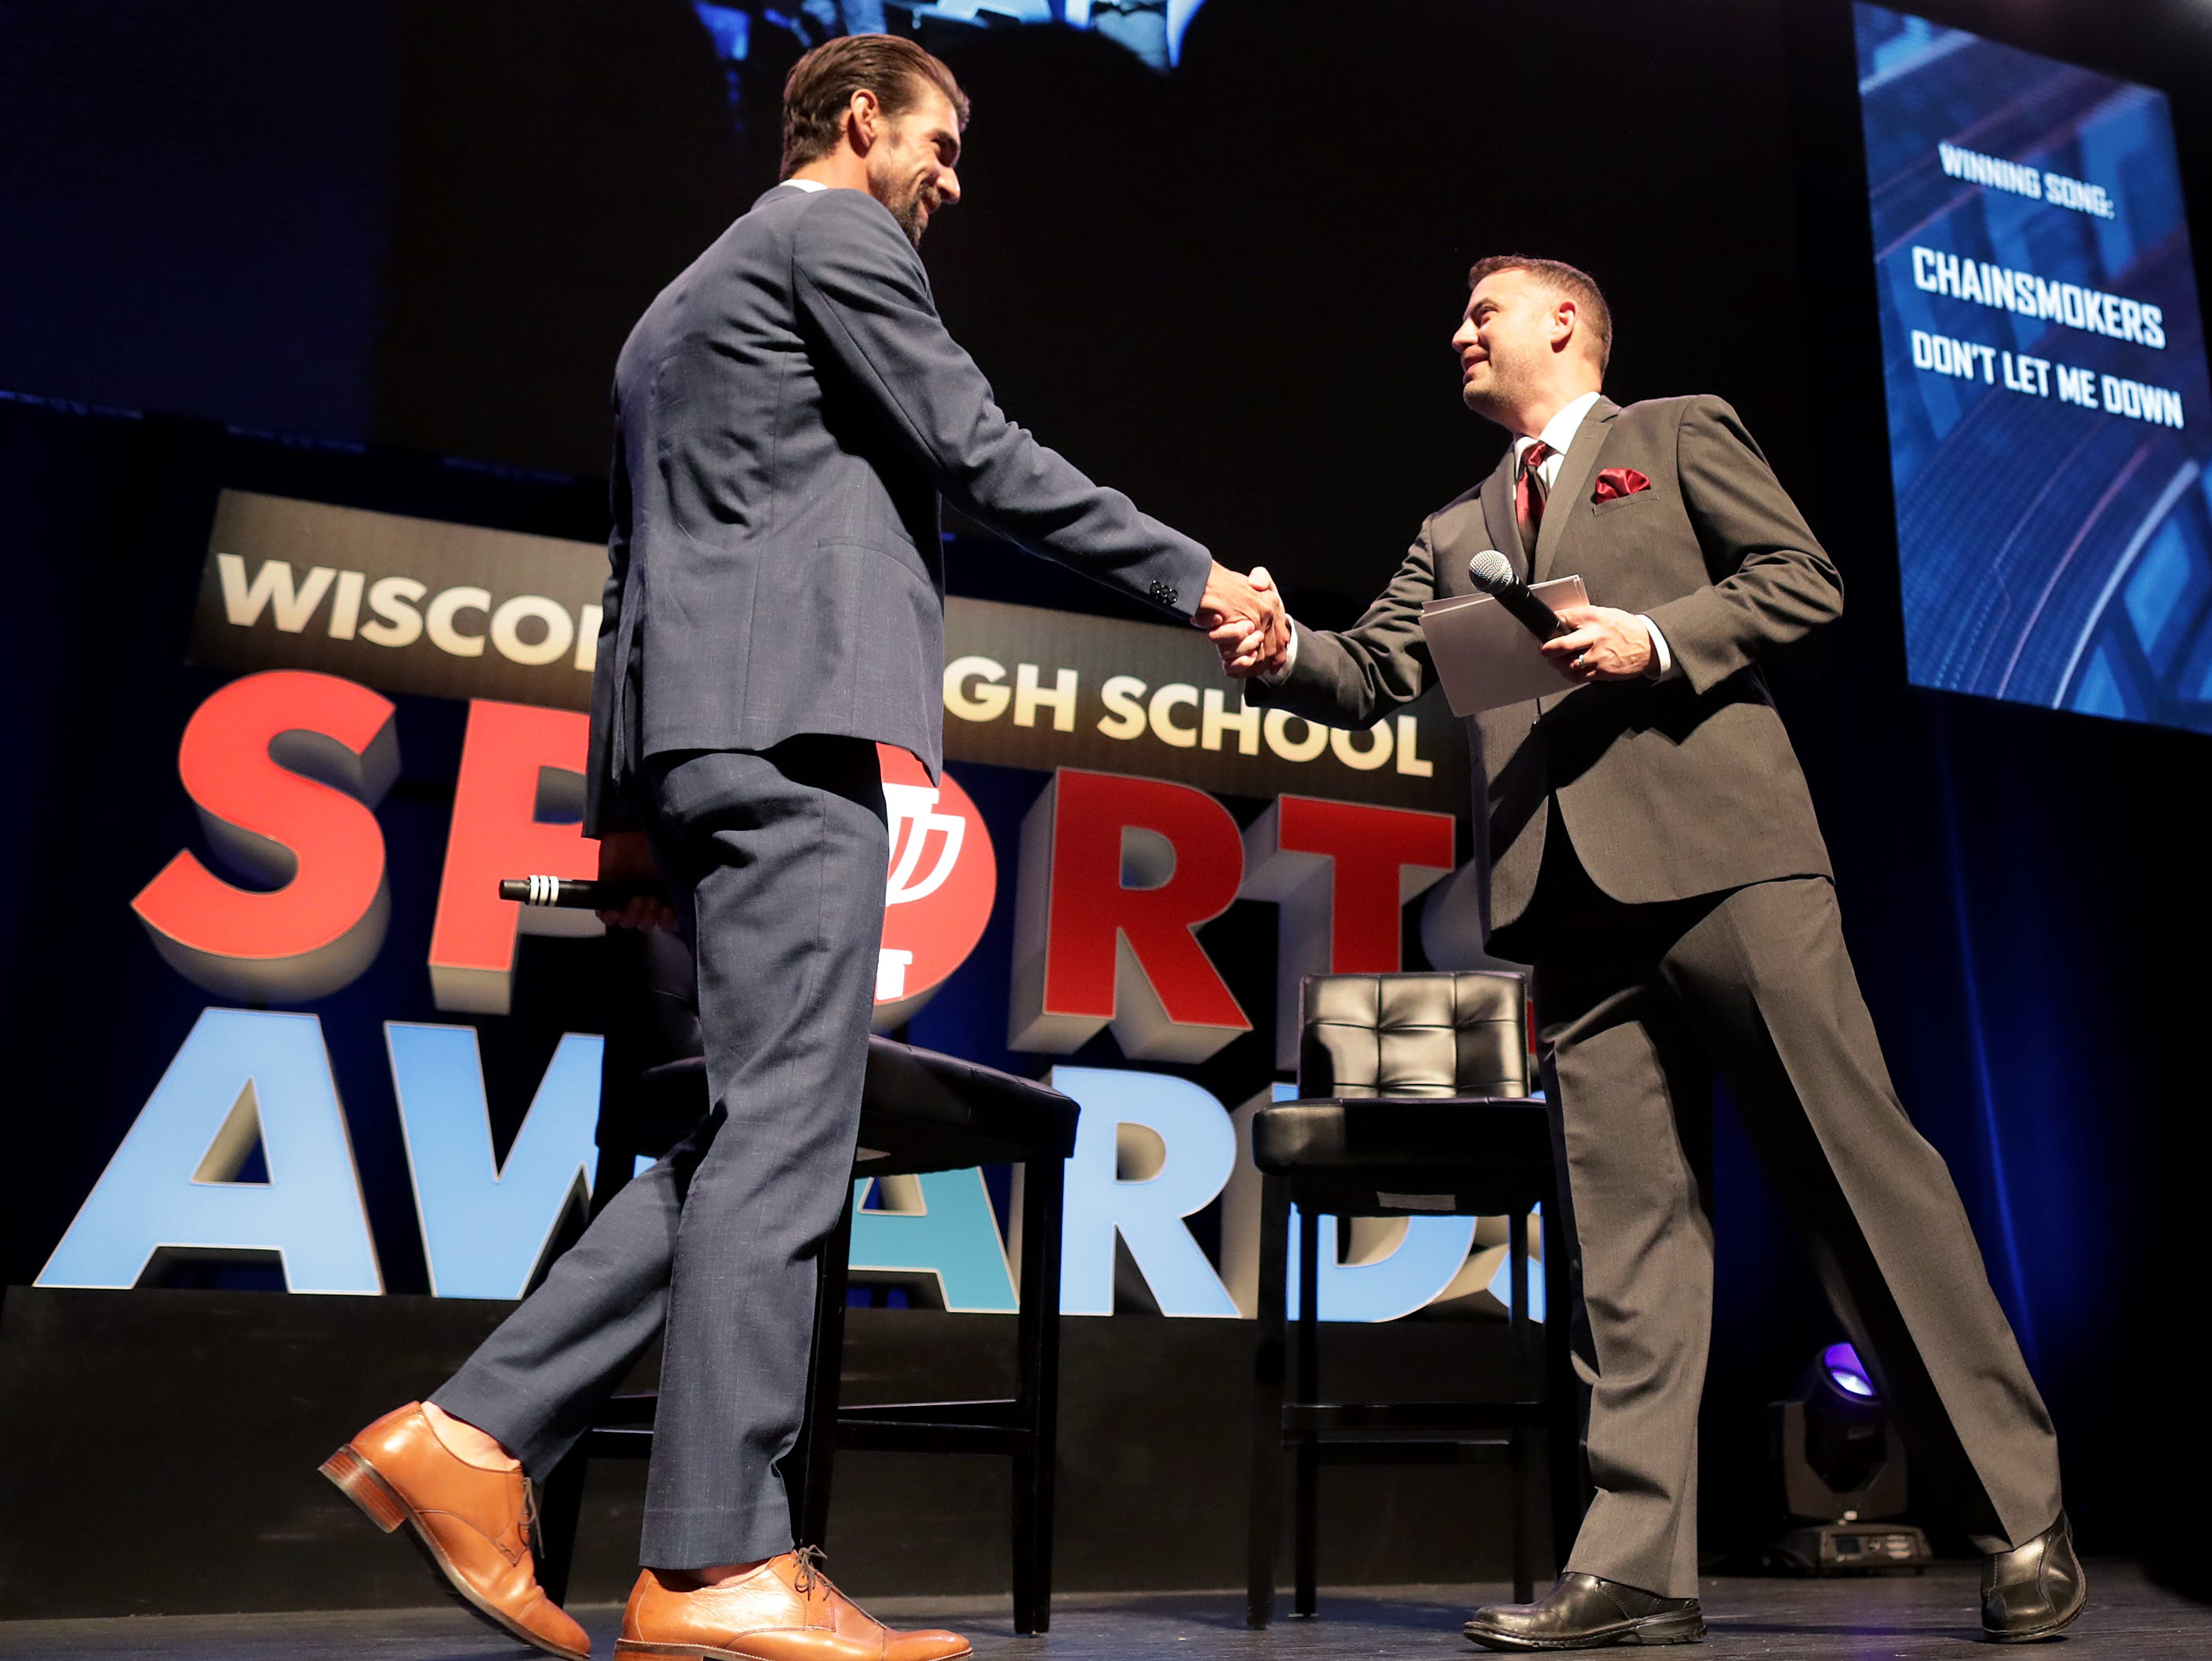 Olympic champion Michael Phelps talks with, host, Brett Christopherson during the Wisconsin High School Sports Awards show at the Fox Cities Performing Arts Center on Wednesday, May 8, 2019, in Appleton, Wis. The annual event was presented by USA TODAY NETWORK-Wisconsin.  Wm. Glasheen/USA TODAY NETWORK-Wisconsin.